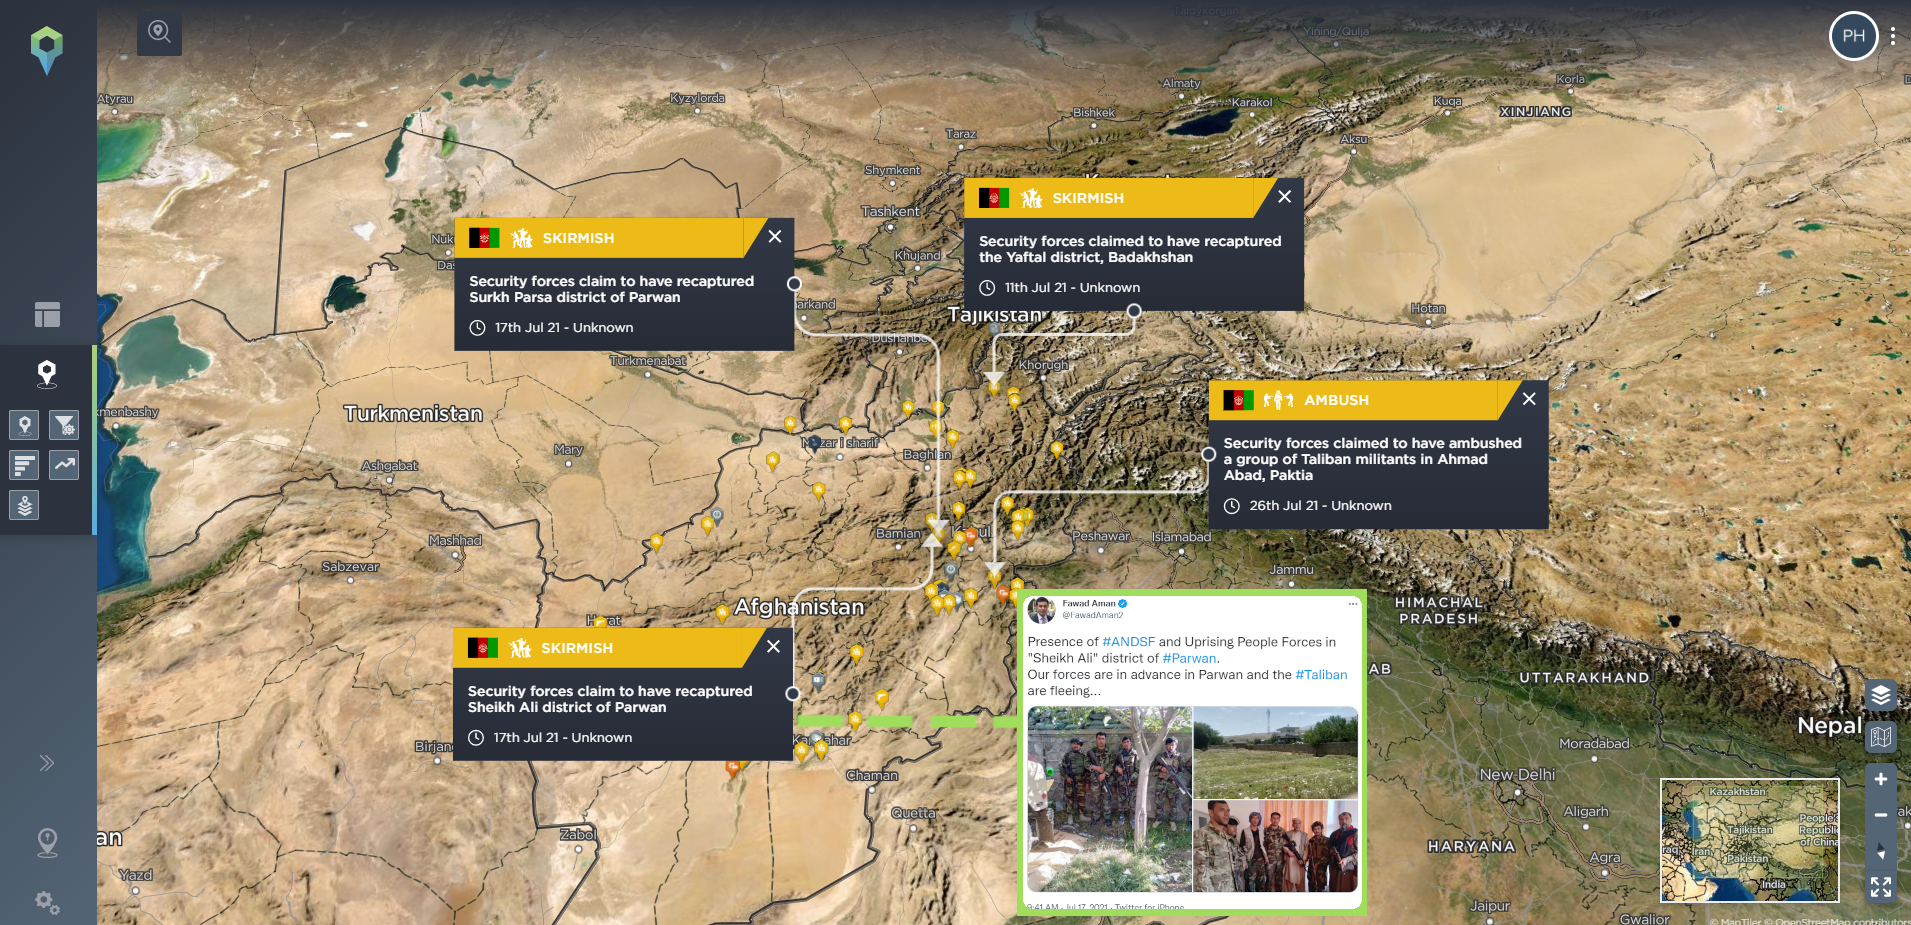 Afghan security forces Twitter